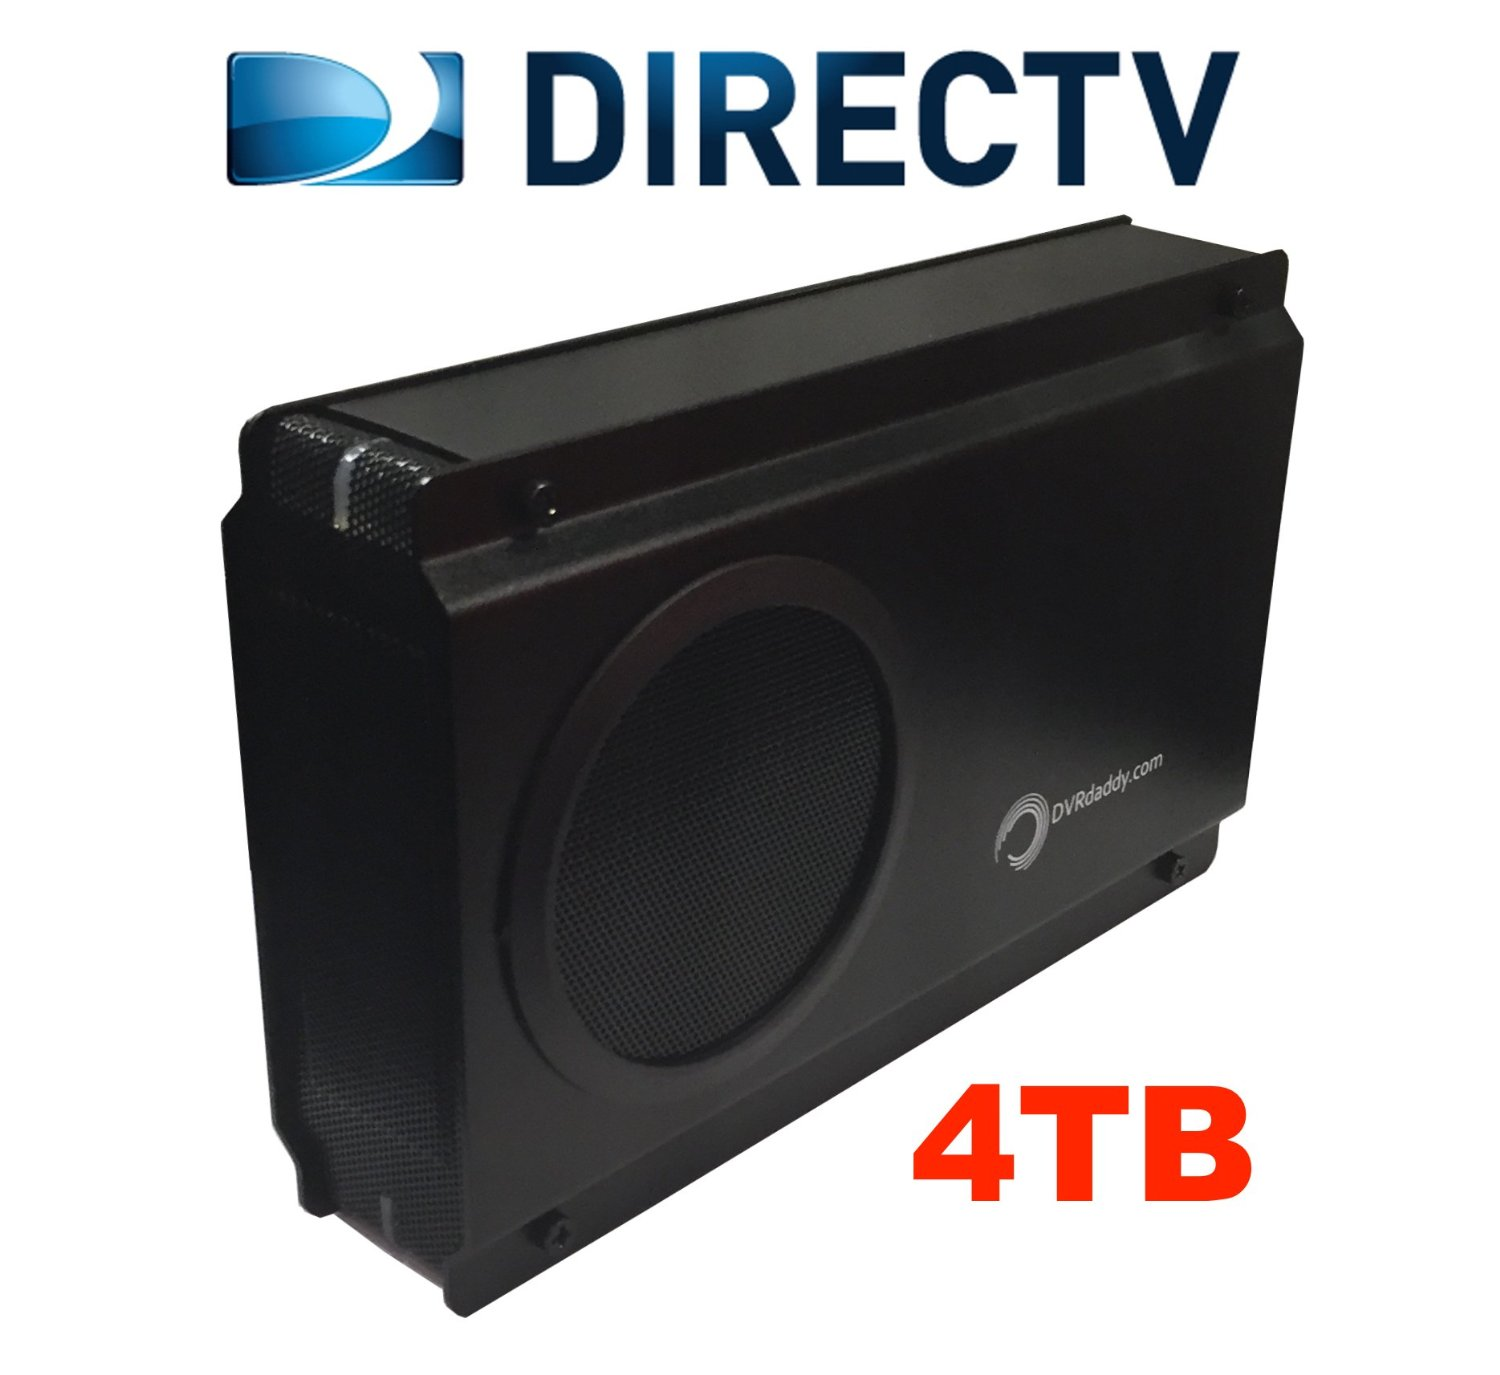 4TB External DVR Hard Drive Expander For DirecTV HR34 and HR44 Genie DVR. +4,000 Hours Recording Capacity and Free Shipping!